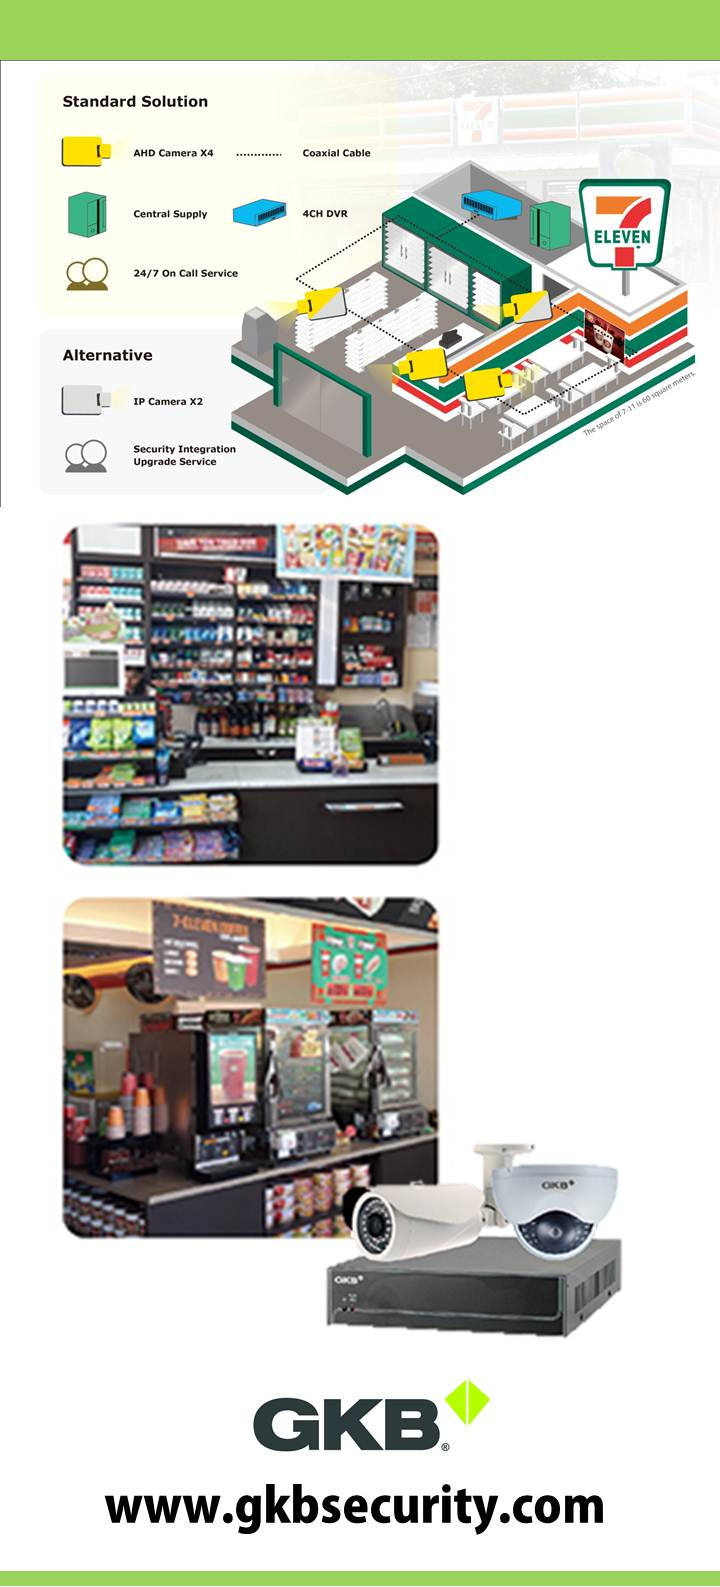 Philippines 7-11 store chain upgrades with GKB cameras